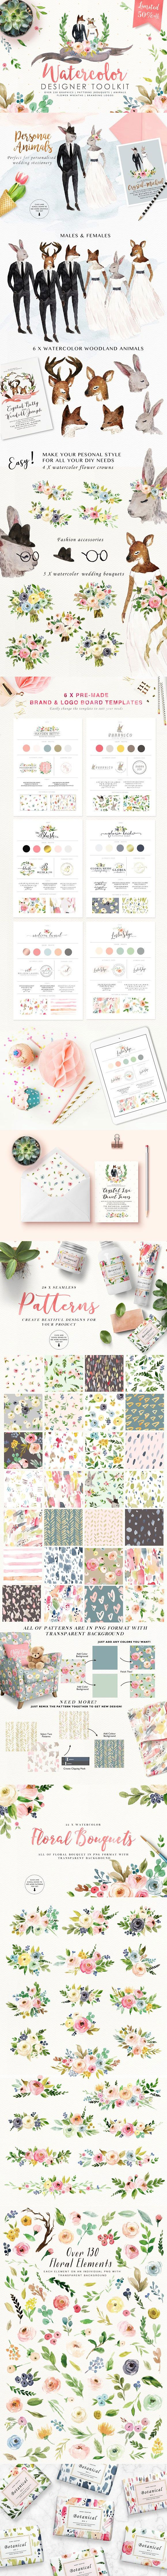 50%off #Watercolor #Designer Toolkit : This is a fancinating collection with #romantic colours, bunch of #graphic elements and #patterns, pre-designed logo board. It gives you possibilities for your imagination and it will definitely add value if incorporated into your products, you will enjoy the creation process!